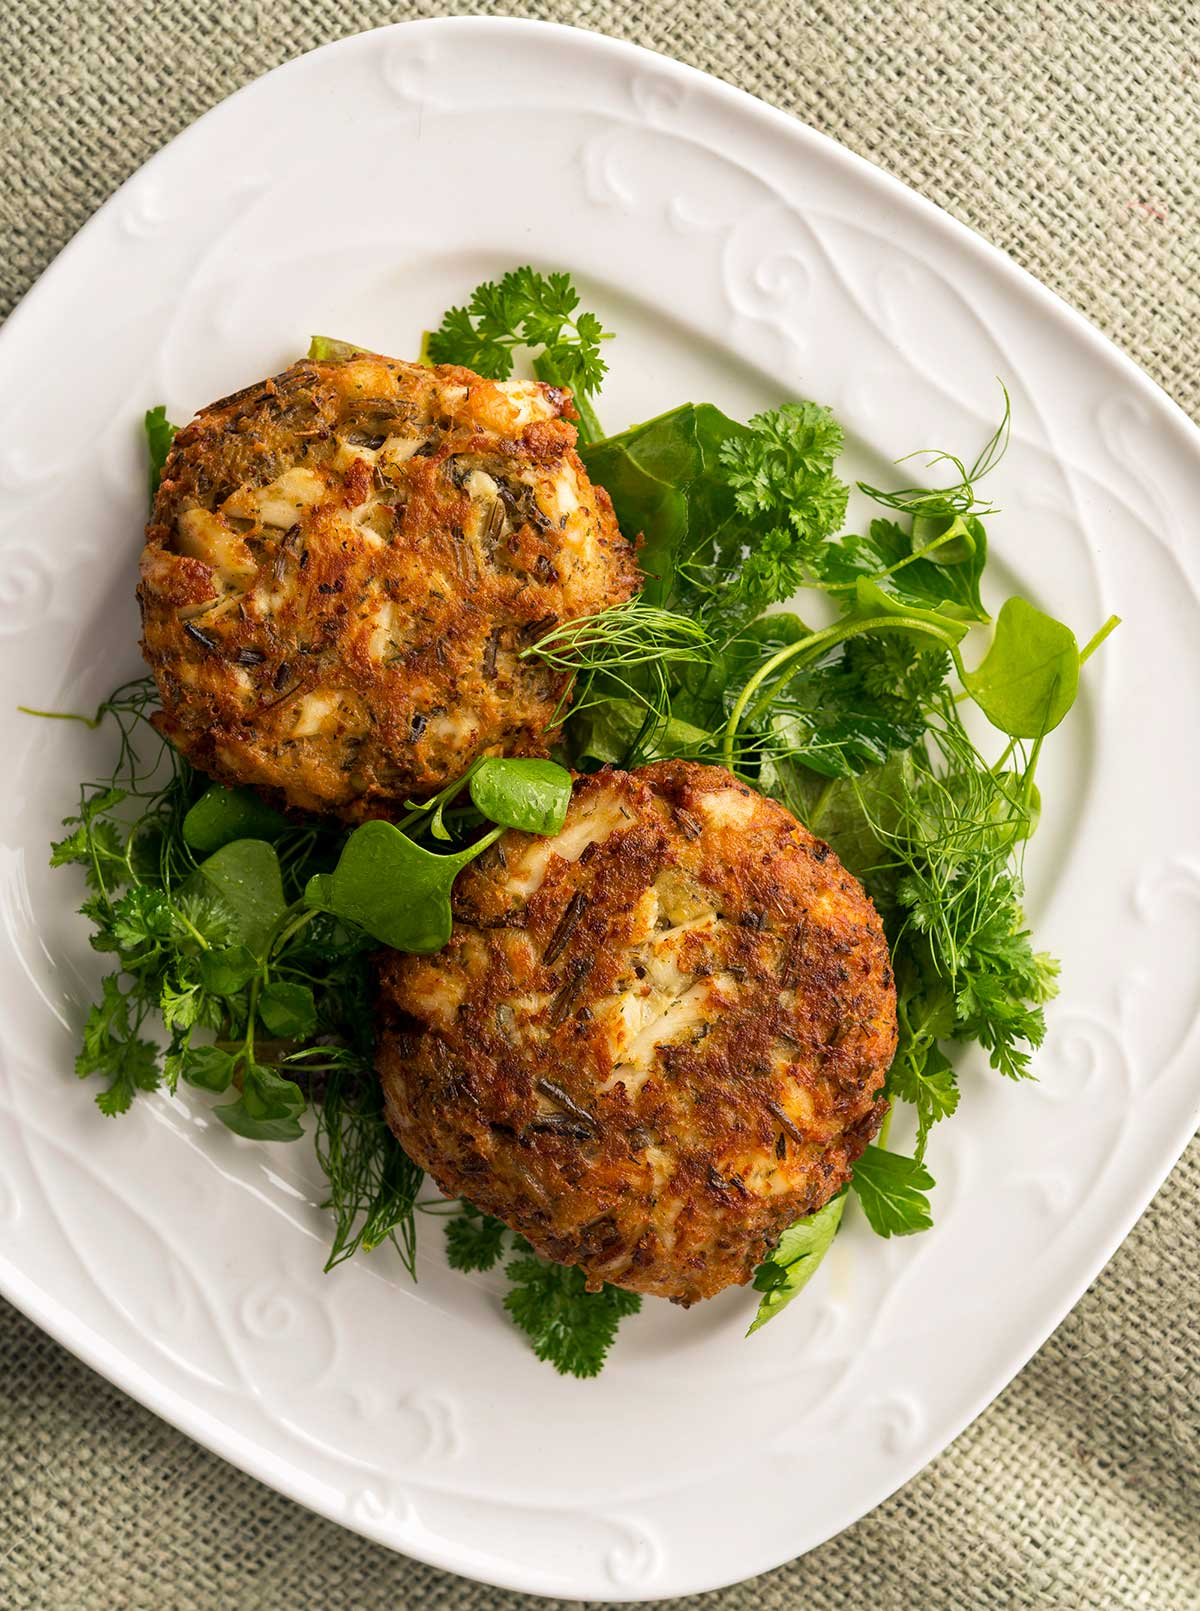 Finished fish cakes recipe on a plate with a green salad.